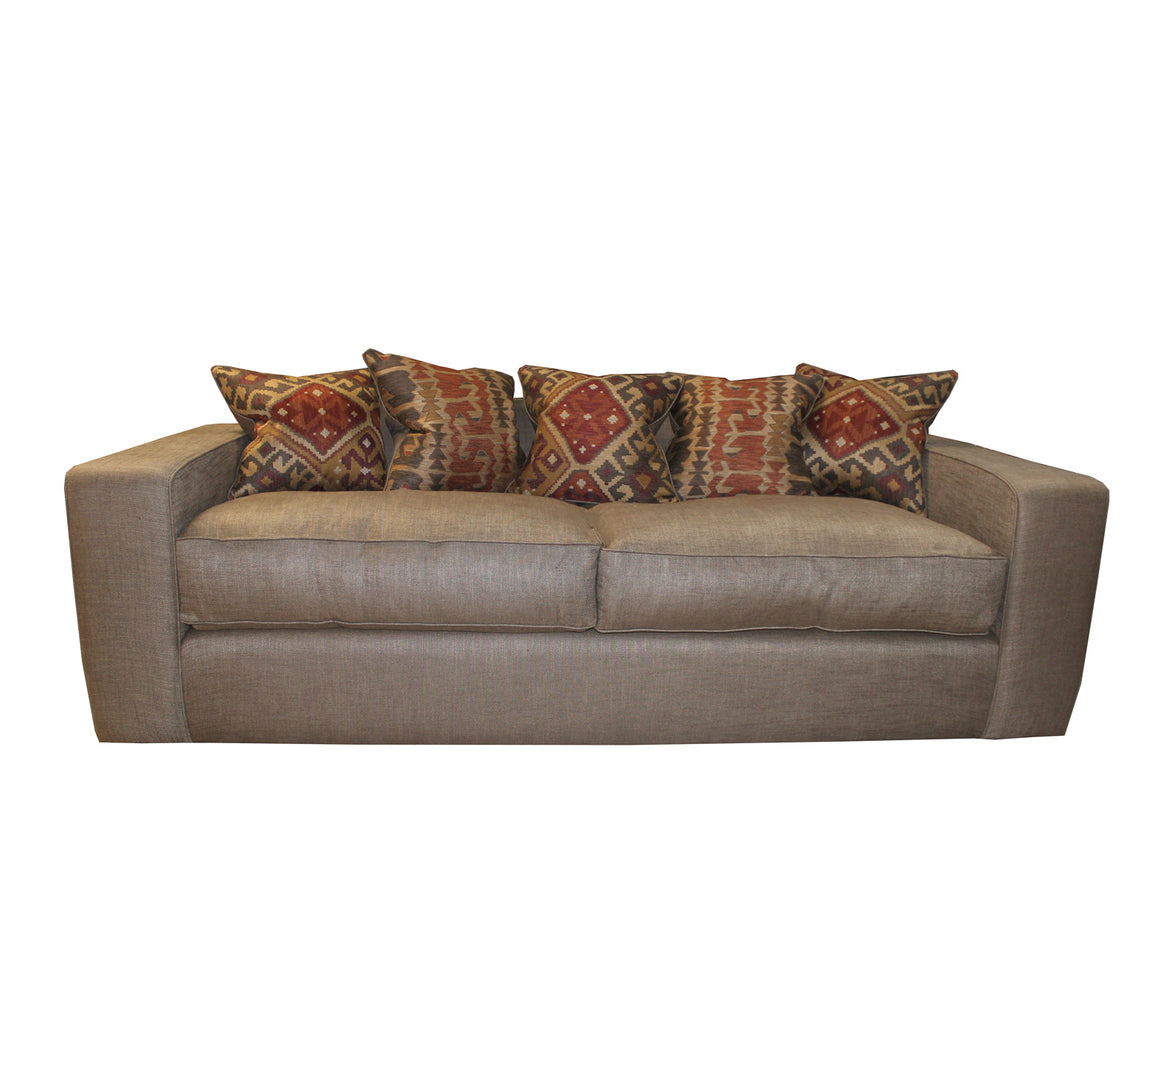 Surrey Sofa in Groovy BUY ONE, GET ONE FREE